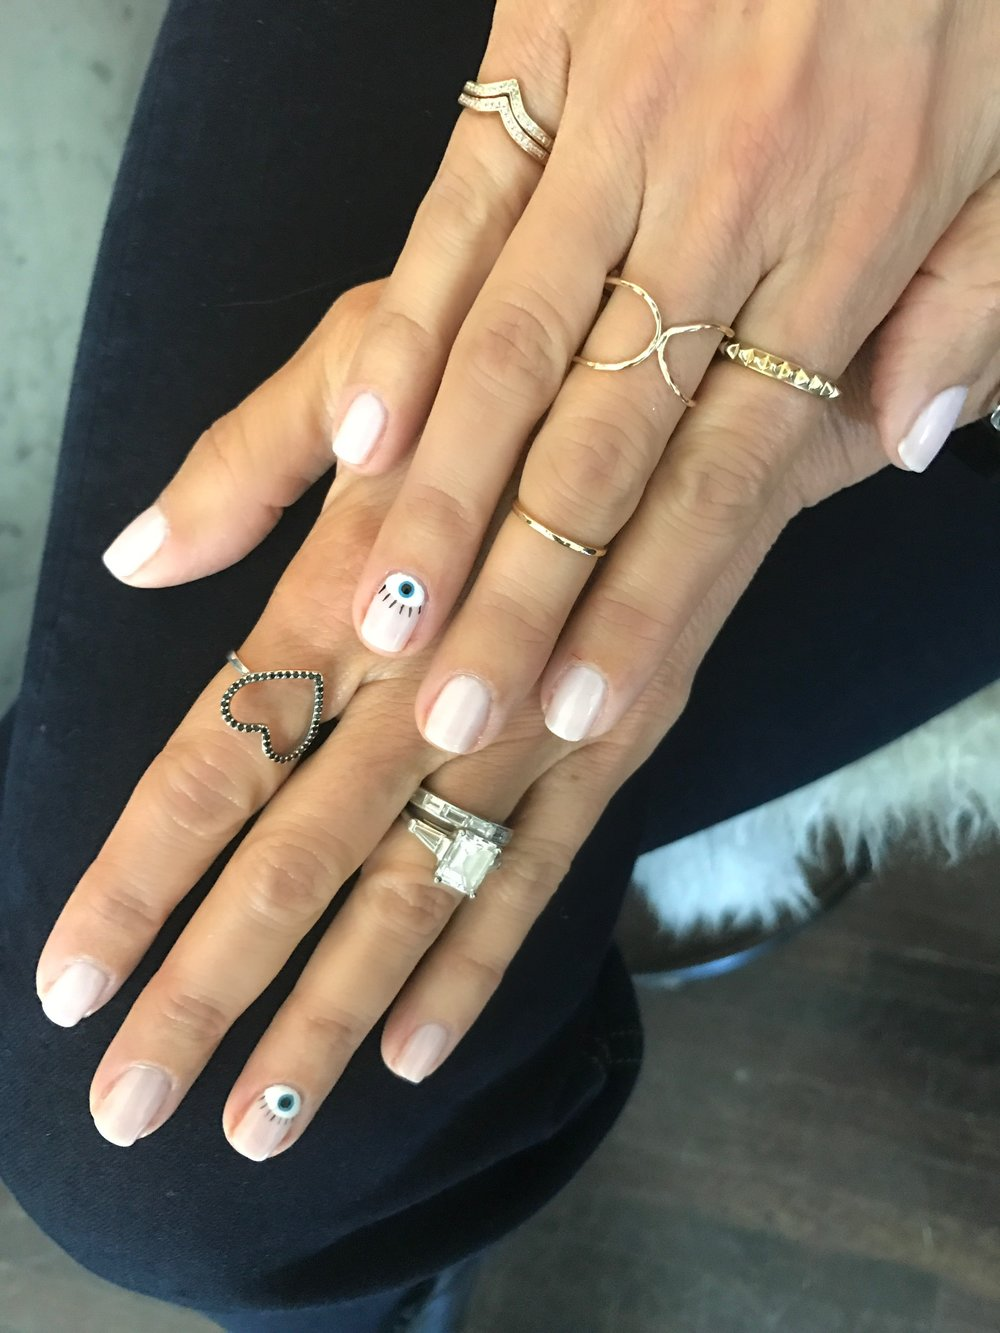 Melissa Meyers + Glamsquad nail art - Mani Monday: Evil Eye Nail Art And The GLAMSQUAD (video) — The Glow